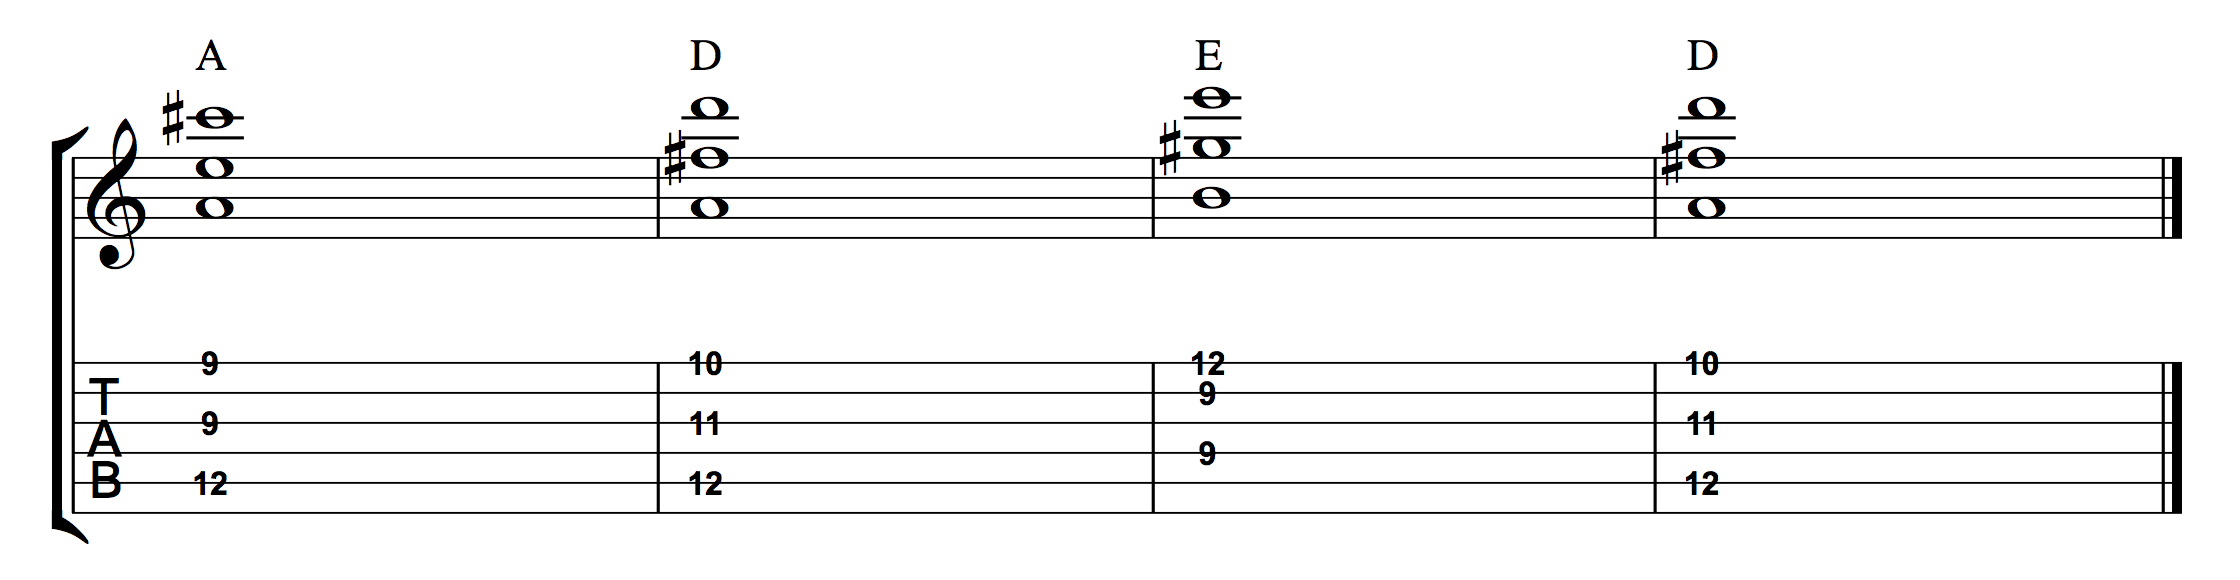 42 unique ways to play 1 chord online guitar books chord progression example 2 hexwebz Gallery